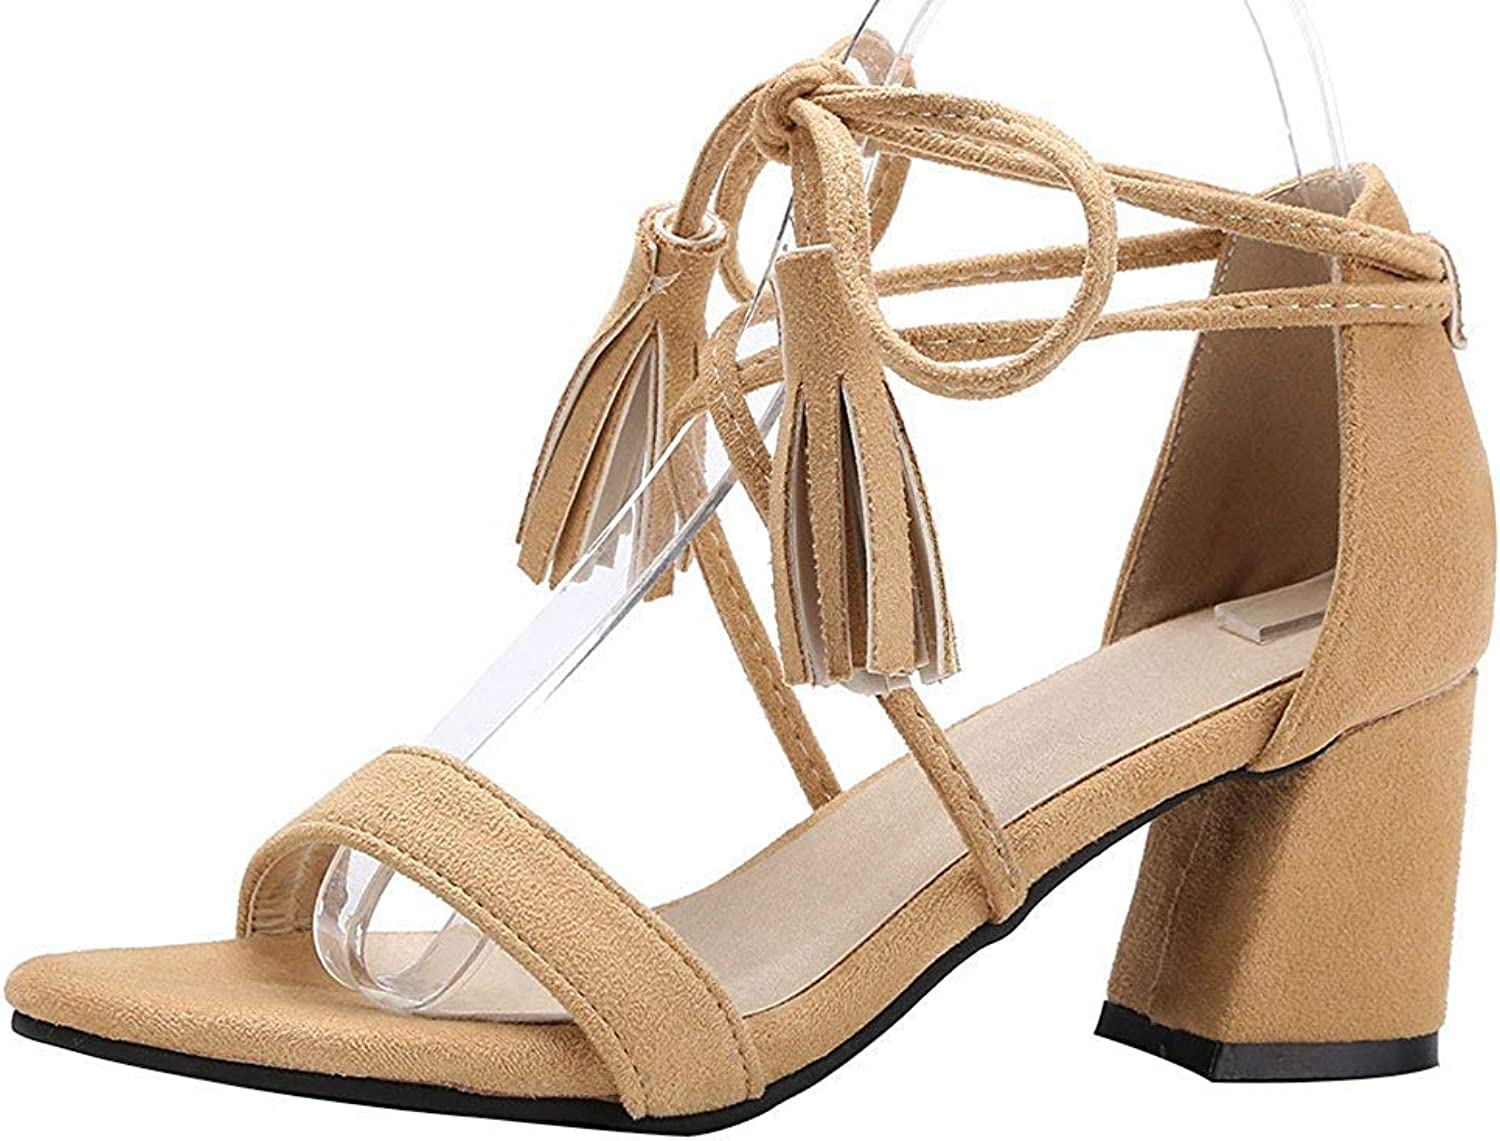 Wallhewb Women's Fashion Fringes Self Tie Sandals - Open Toe Faux Suede Solid color - Lace Up Block Medium Heel shoes Dexterous Rubber Sole No Grinding Feet Breathable Dress Pink 5.5 M US Sandals